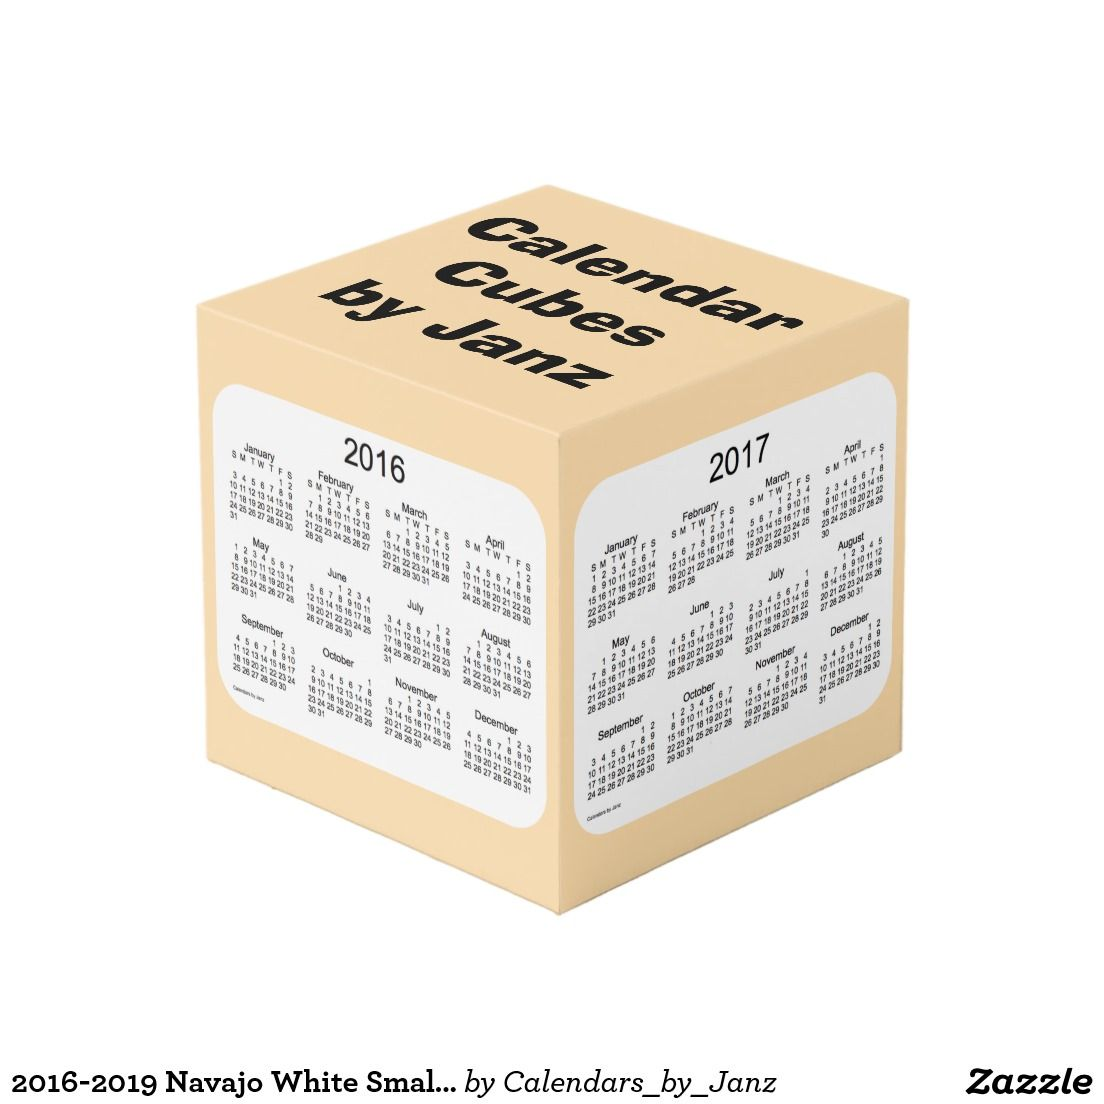 2016-2019 Navajo White Small Calendar Cube by Janz Photo Cube